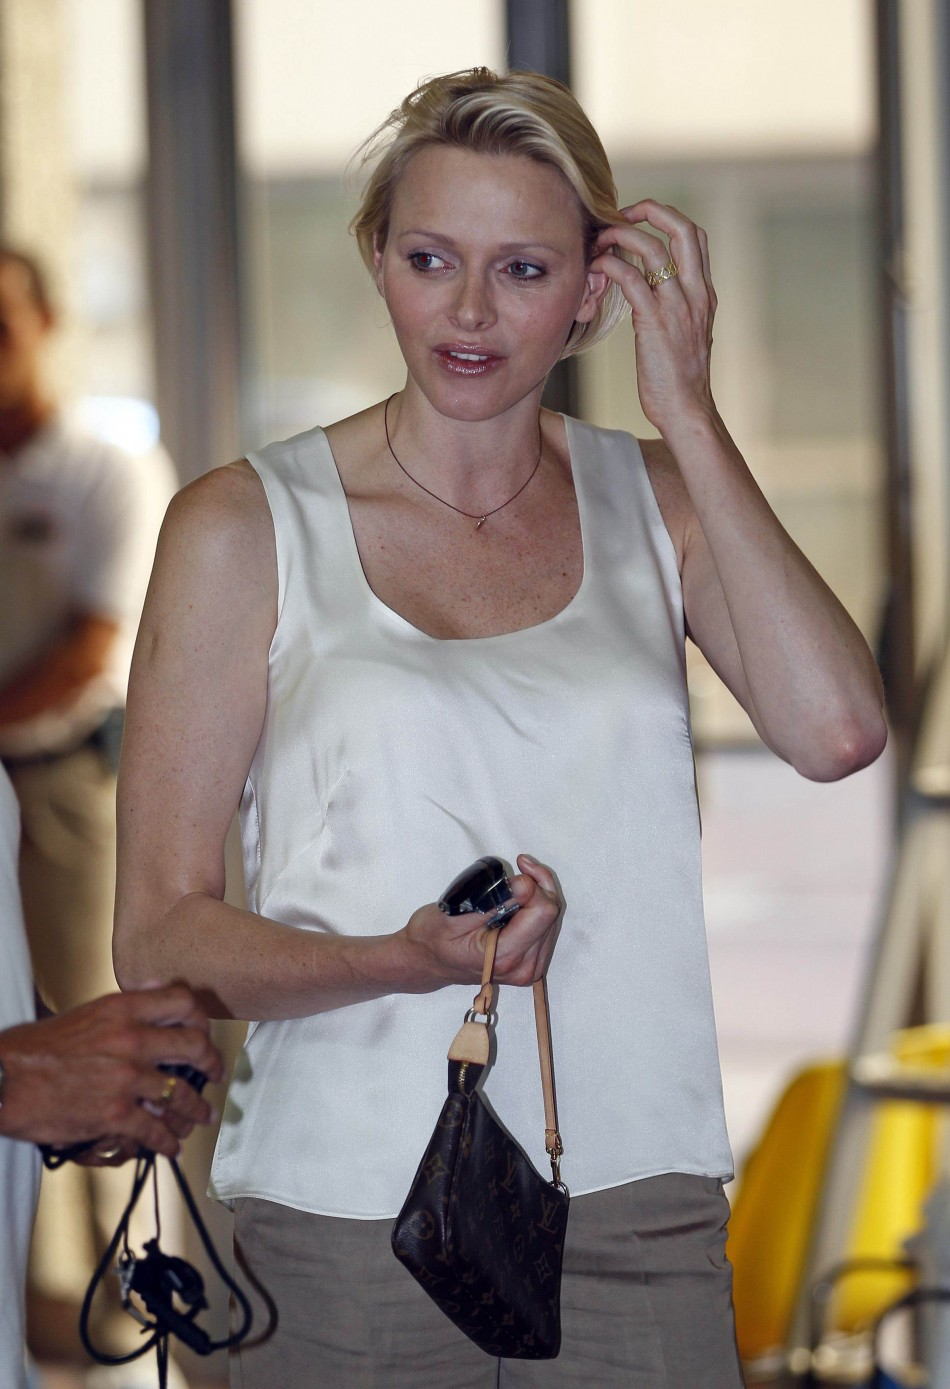 Princess Charlene of Monaco visits the South Africas swimming team for the London Olympics 2012 during a training session at Louis II stadium swimming pool in Monaco